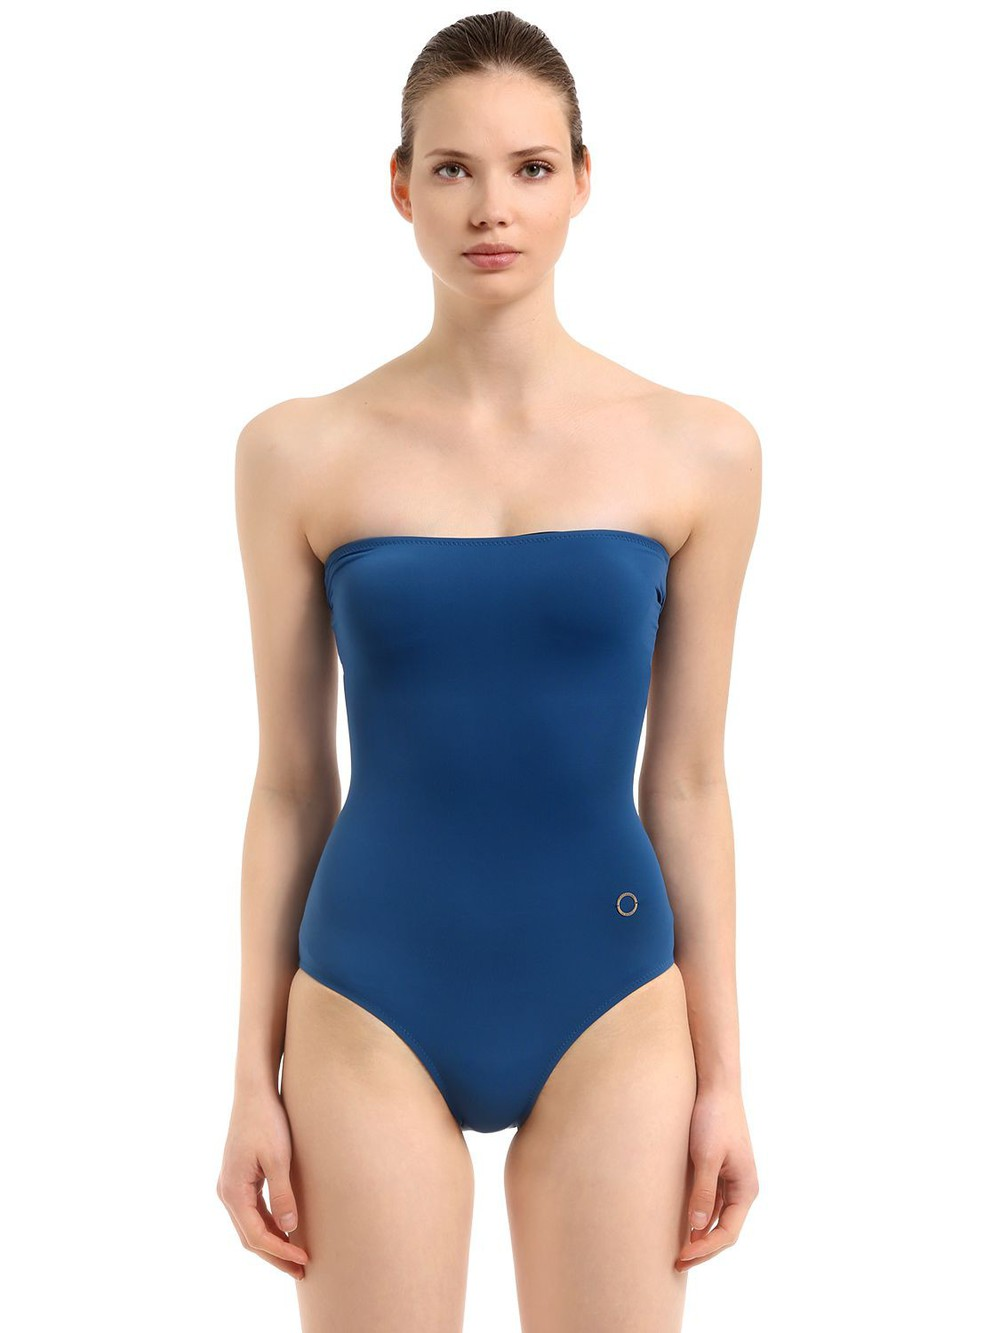 ALESSANDRO DI MARCO Strapless One Piece Swimsuit in blue